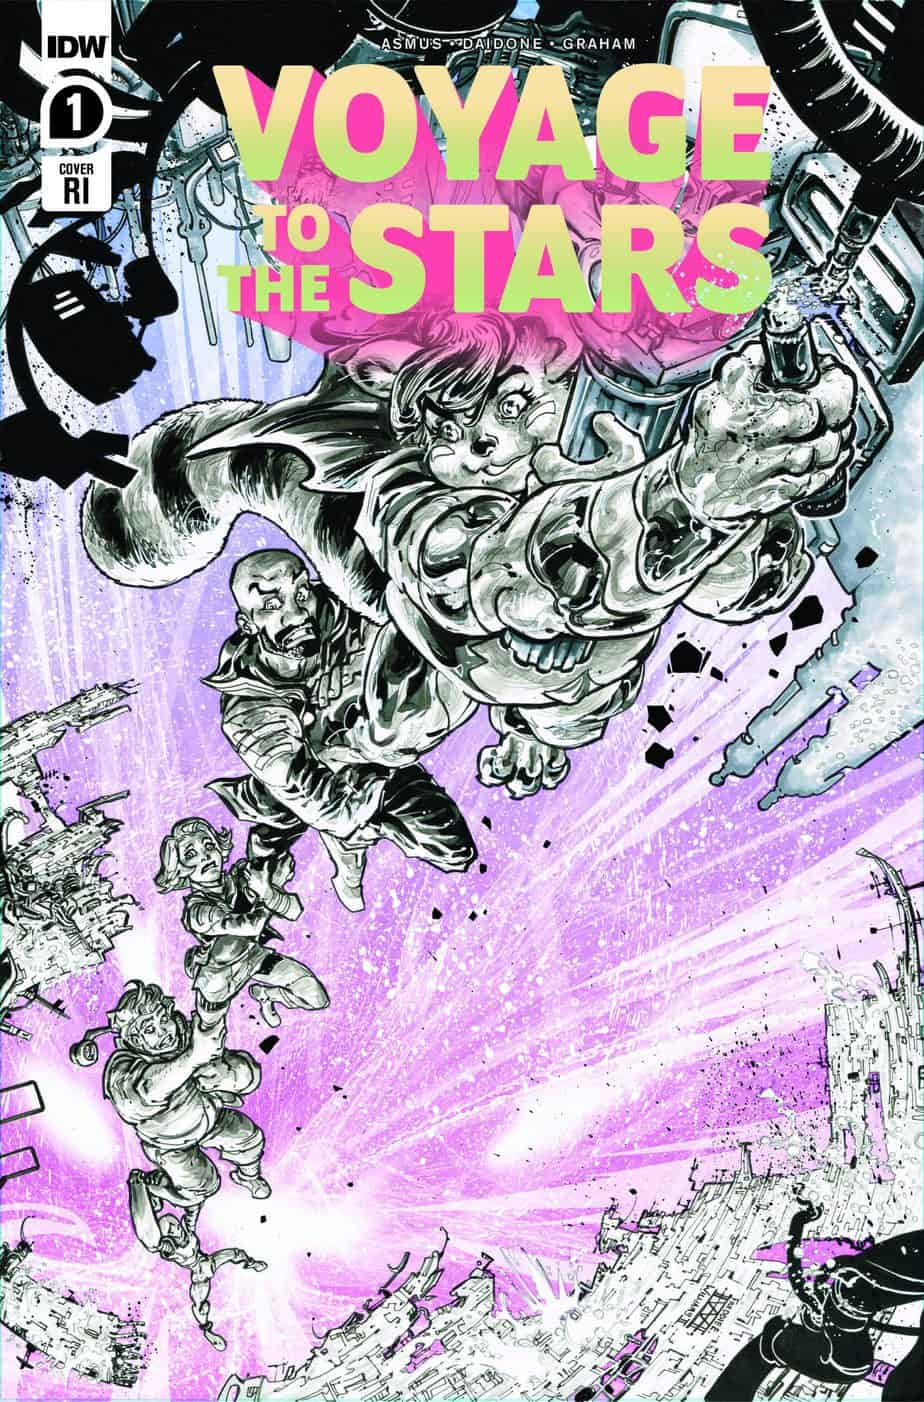 VOYAGE TO THE STARS #1 - Retailer Incentive Cover